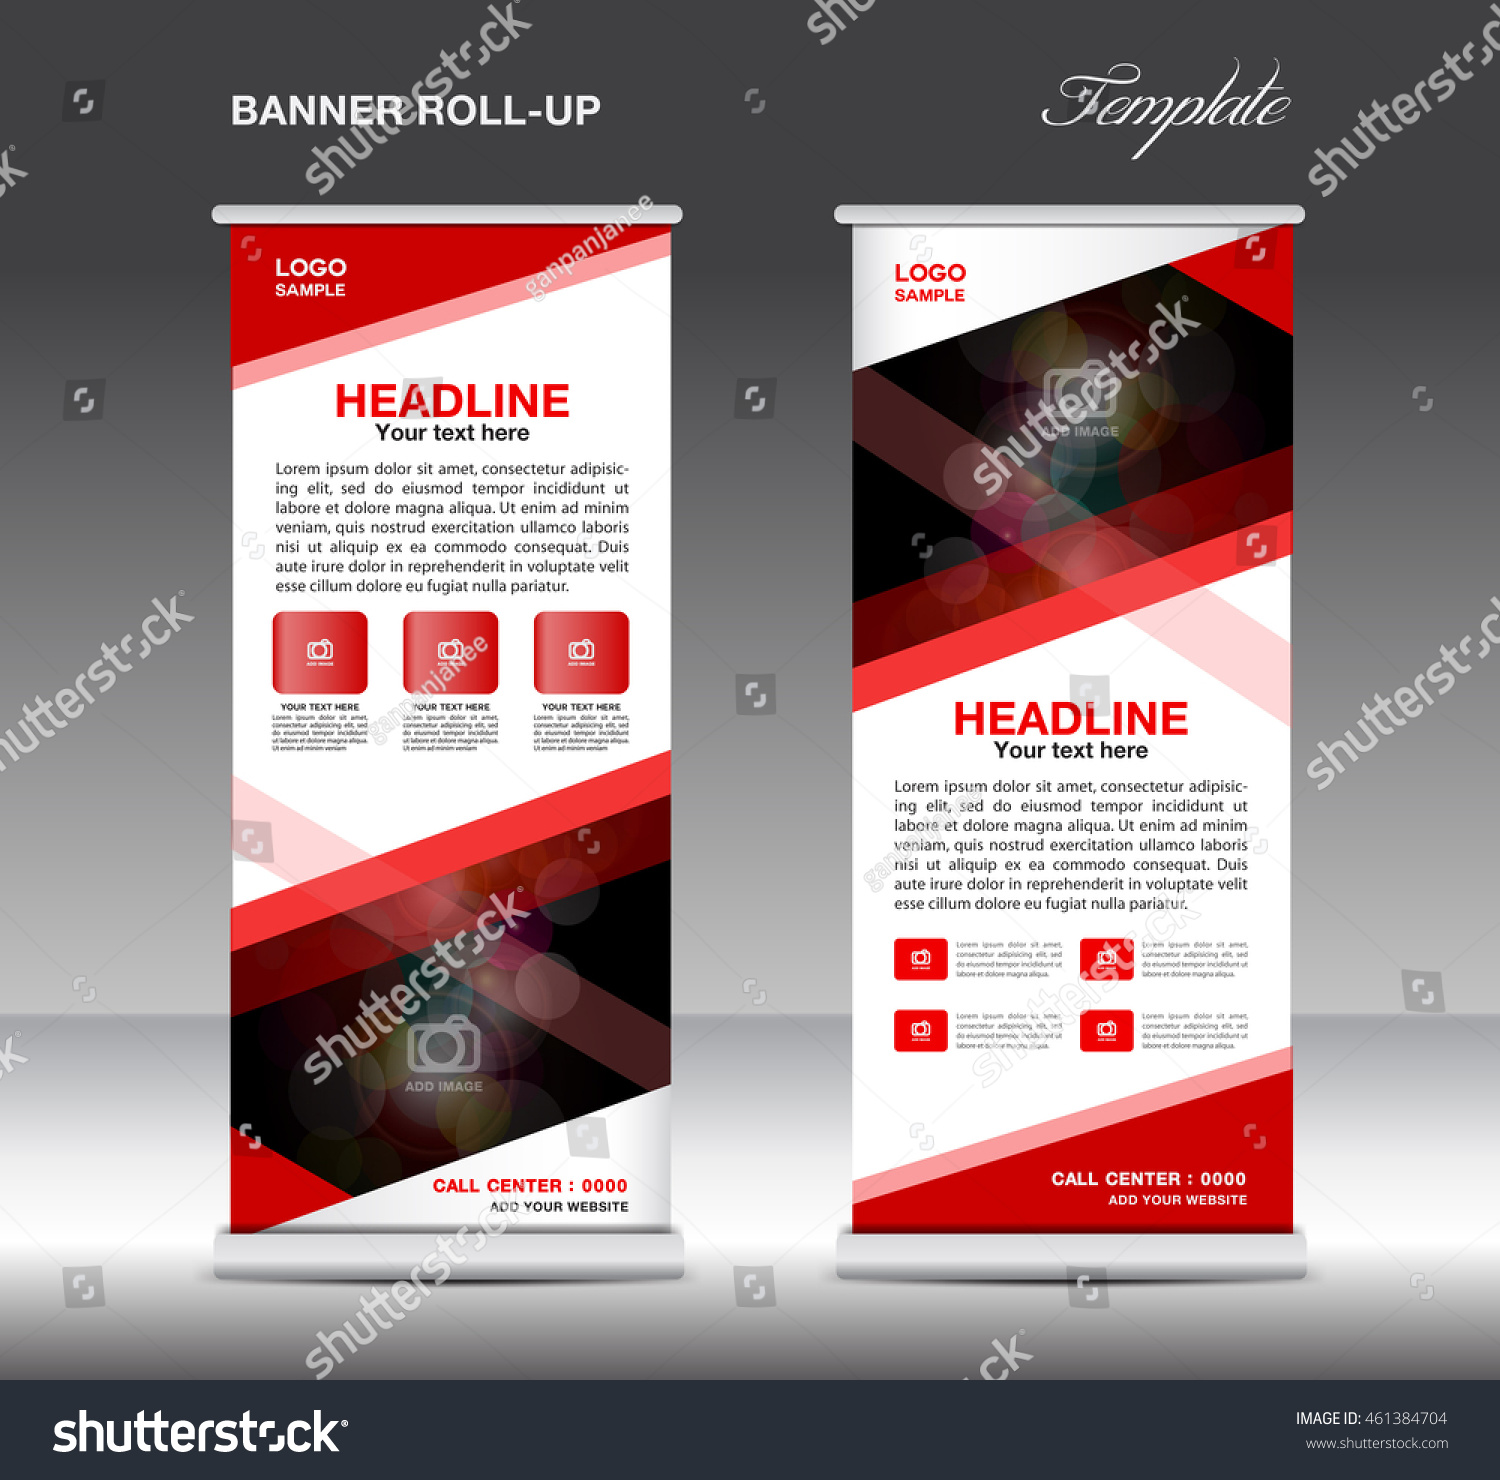 red roll banner template vector standy stock vector  red roll up banner template vector standy design display advertisement flyer for business